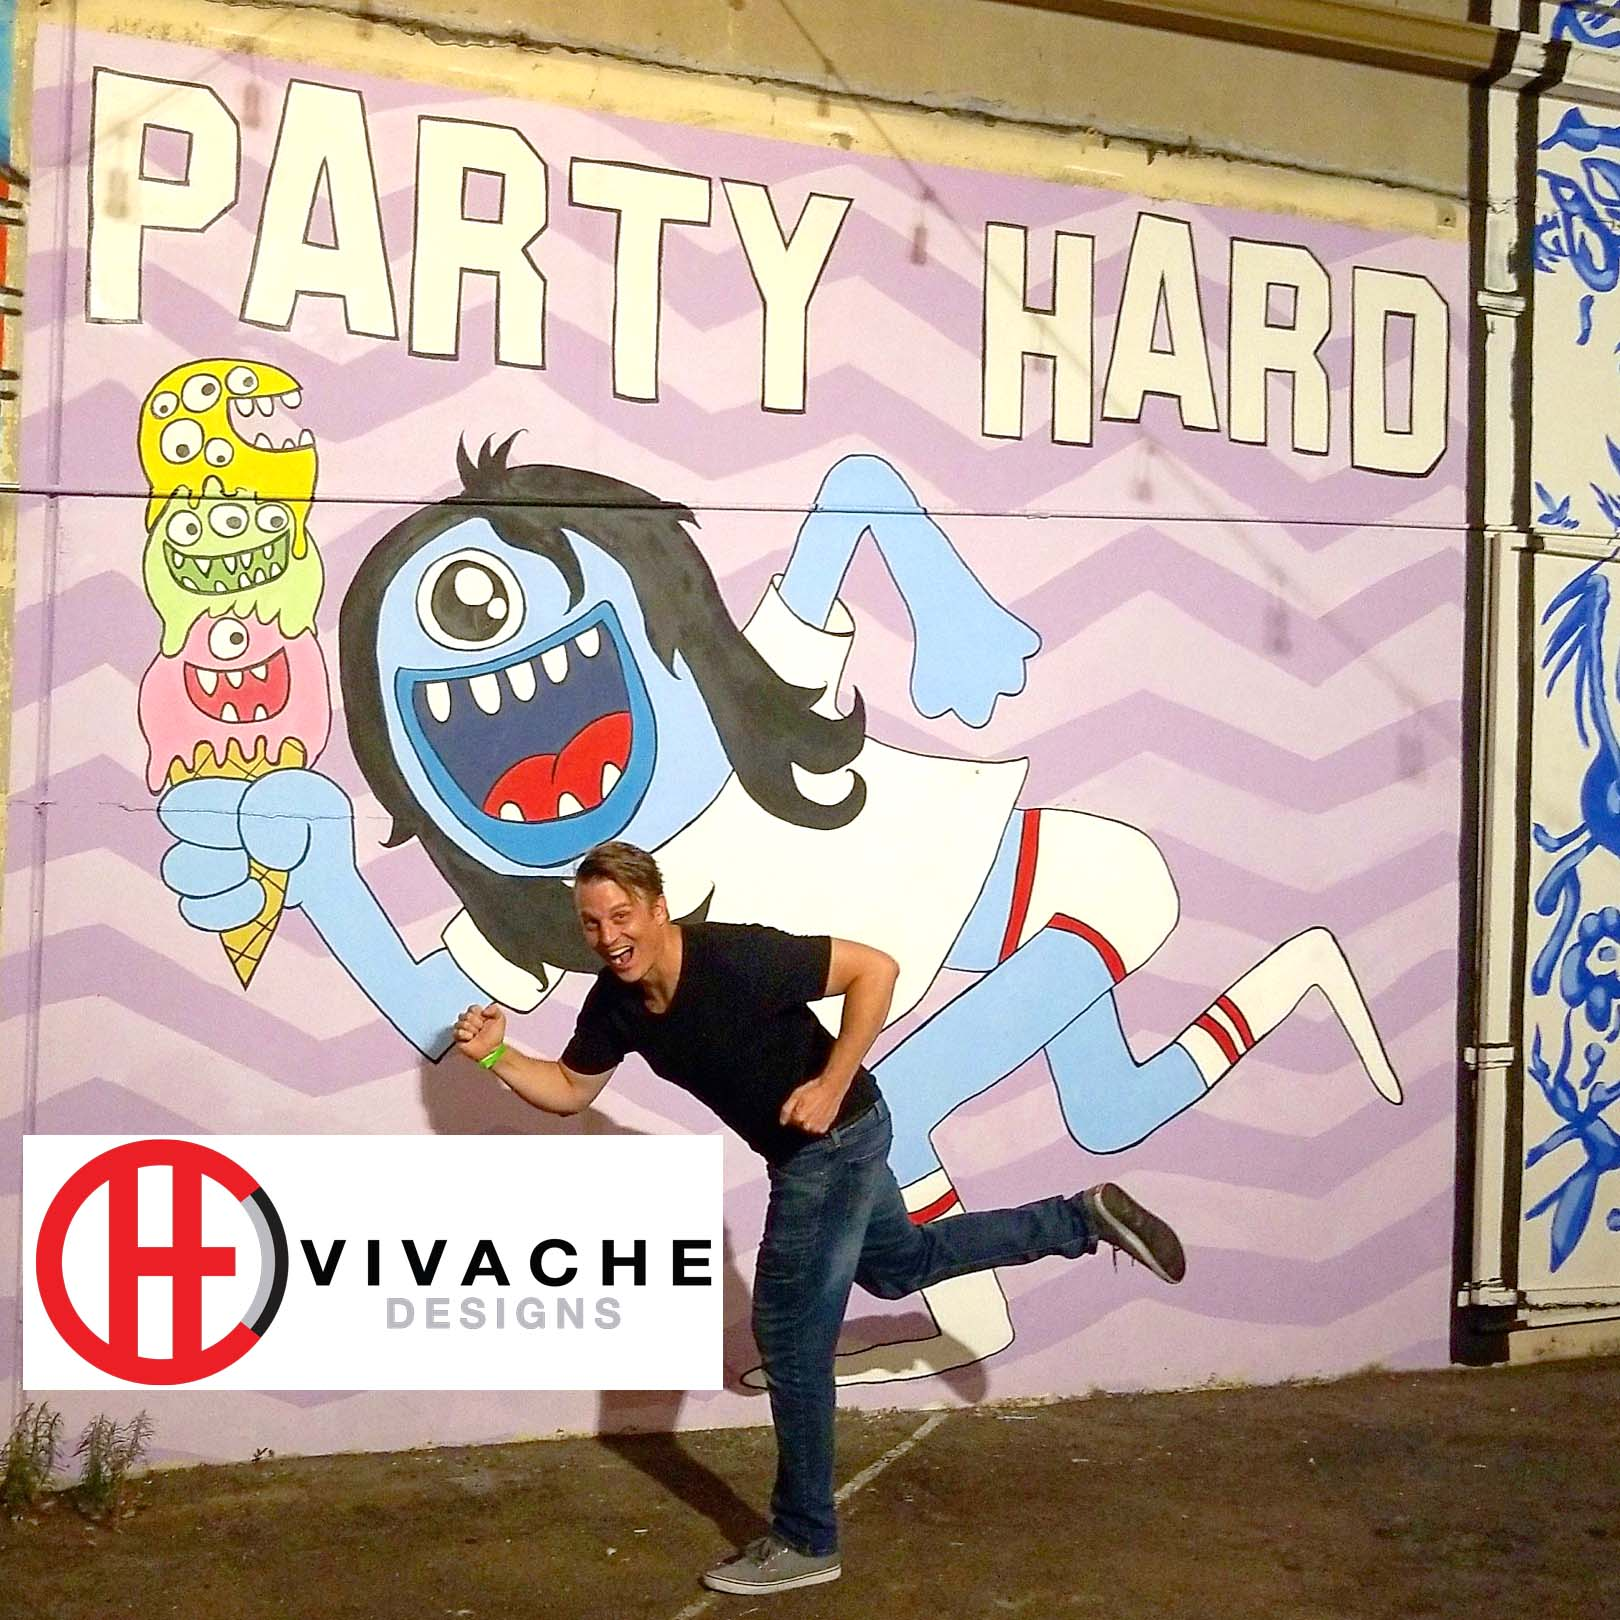 Mural Painter Vivache Designs Mural Gallery LA Art District Mural Painting .jpg